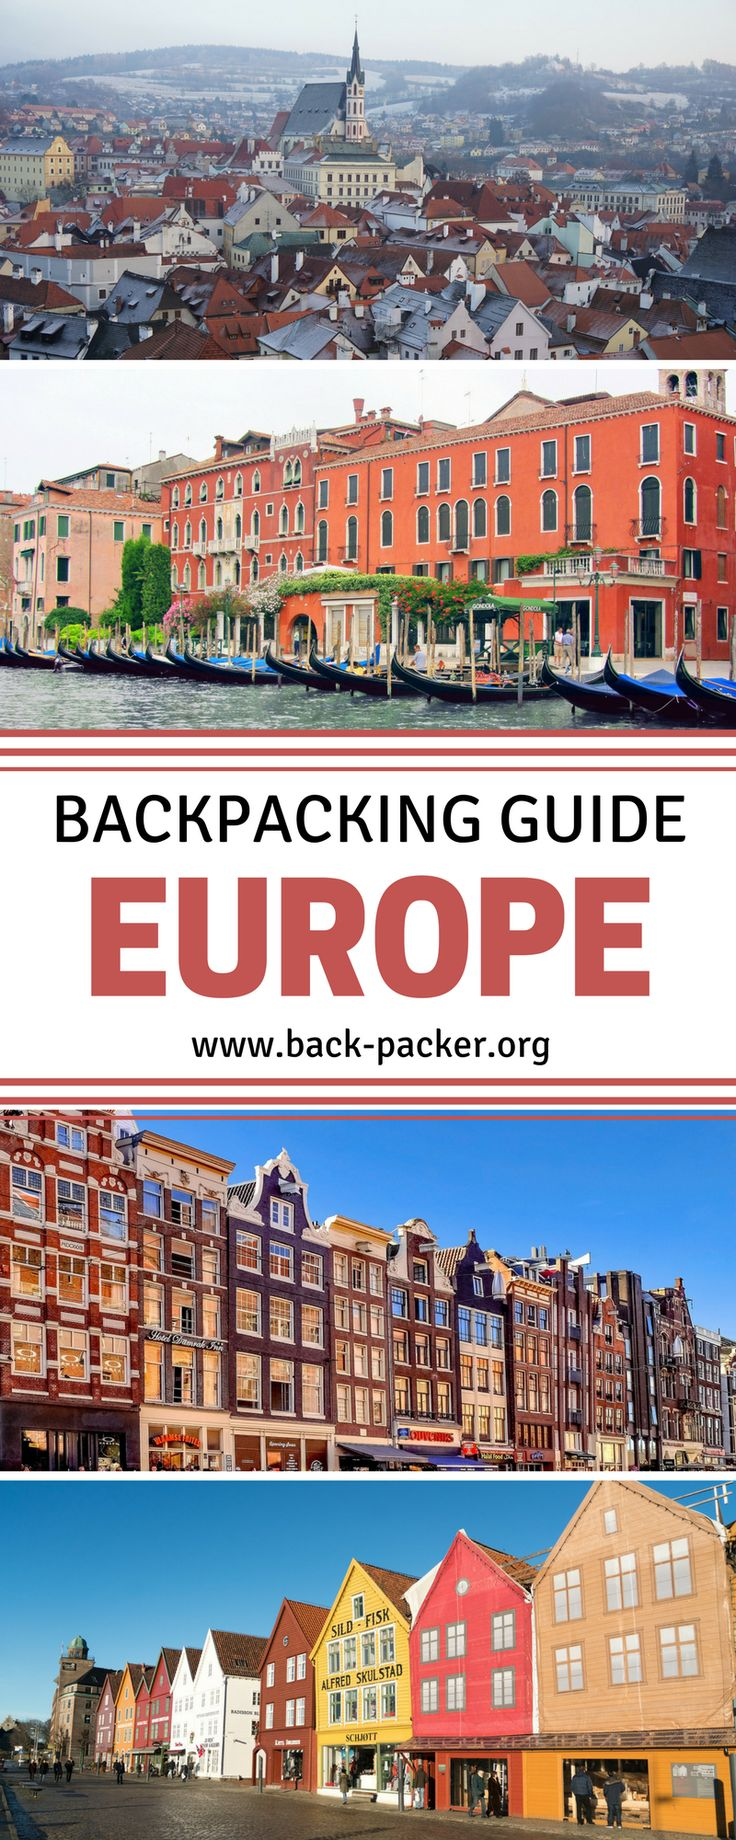 The complete guide to backpacking Europe on a budget. Tips for luggage, packing, transportation and accommodation + budget guides to cities in England, Spain, Italy, Germany, Austria, Norway, Portugal, Scotland and more. Budget travel in Europe. | Back-pa